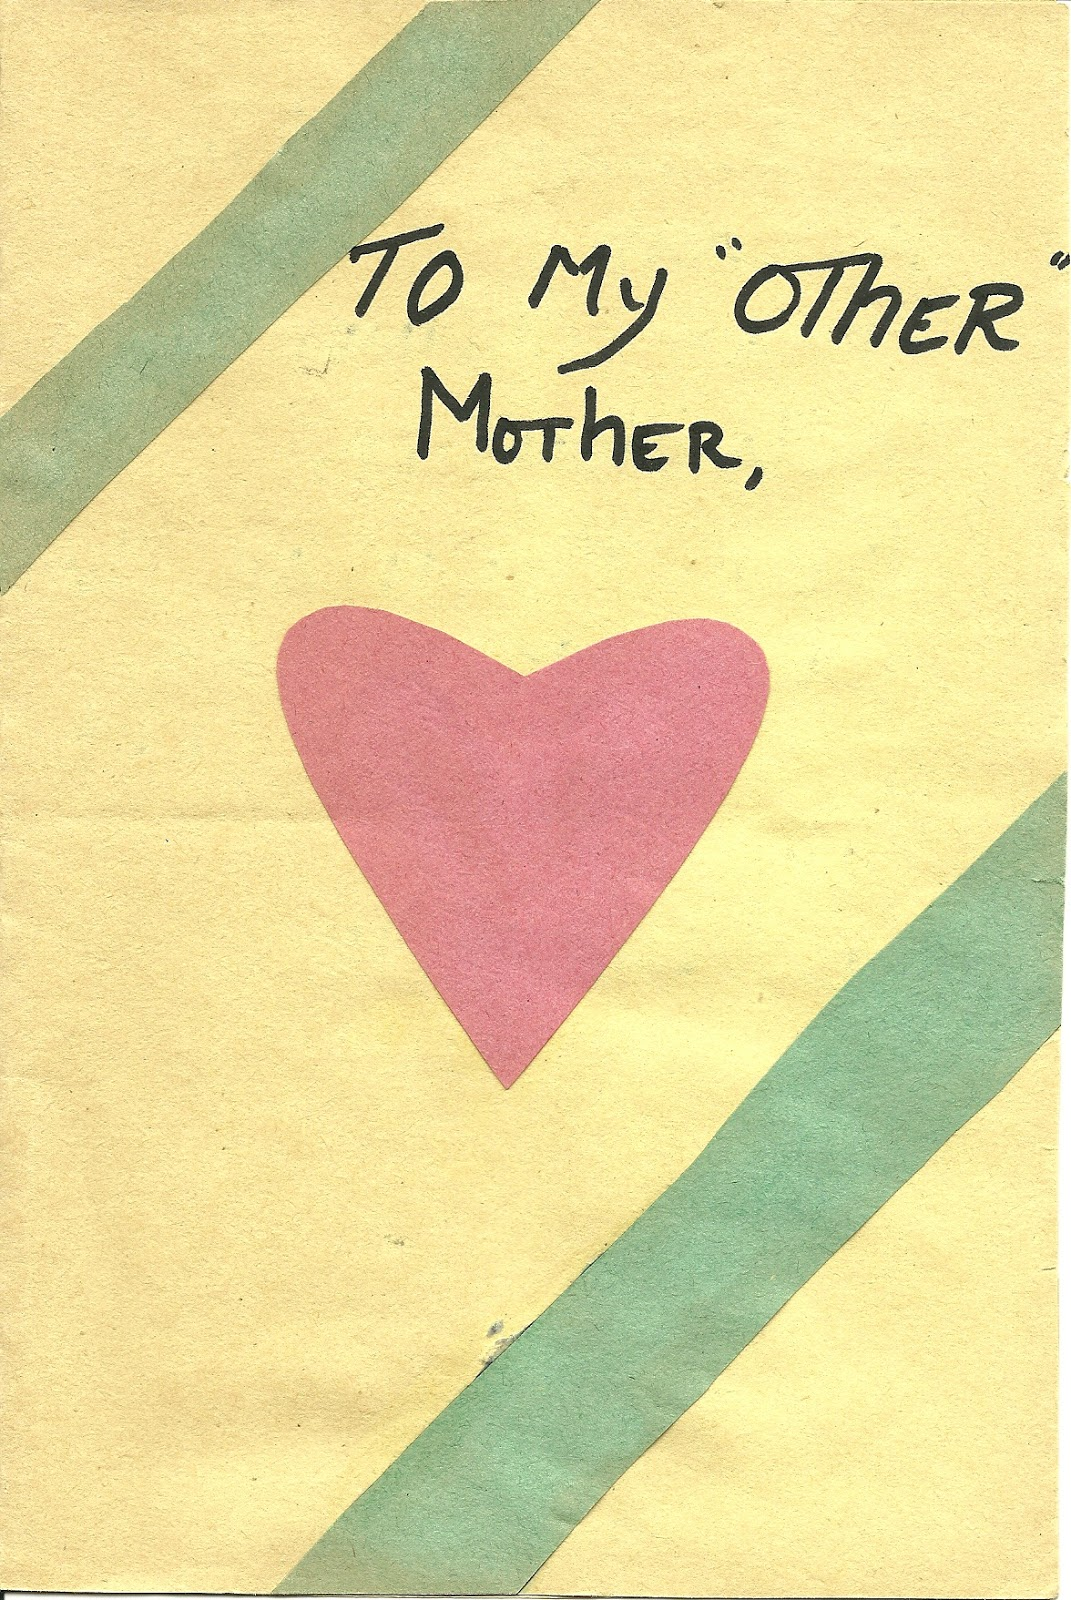 Birth mother first mother forum its here again mothers day blues the best card kristyandbryce Gallery